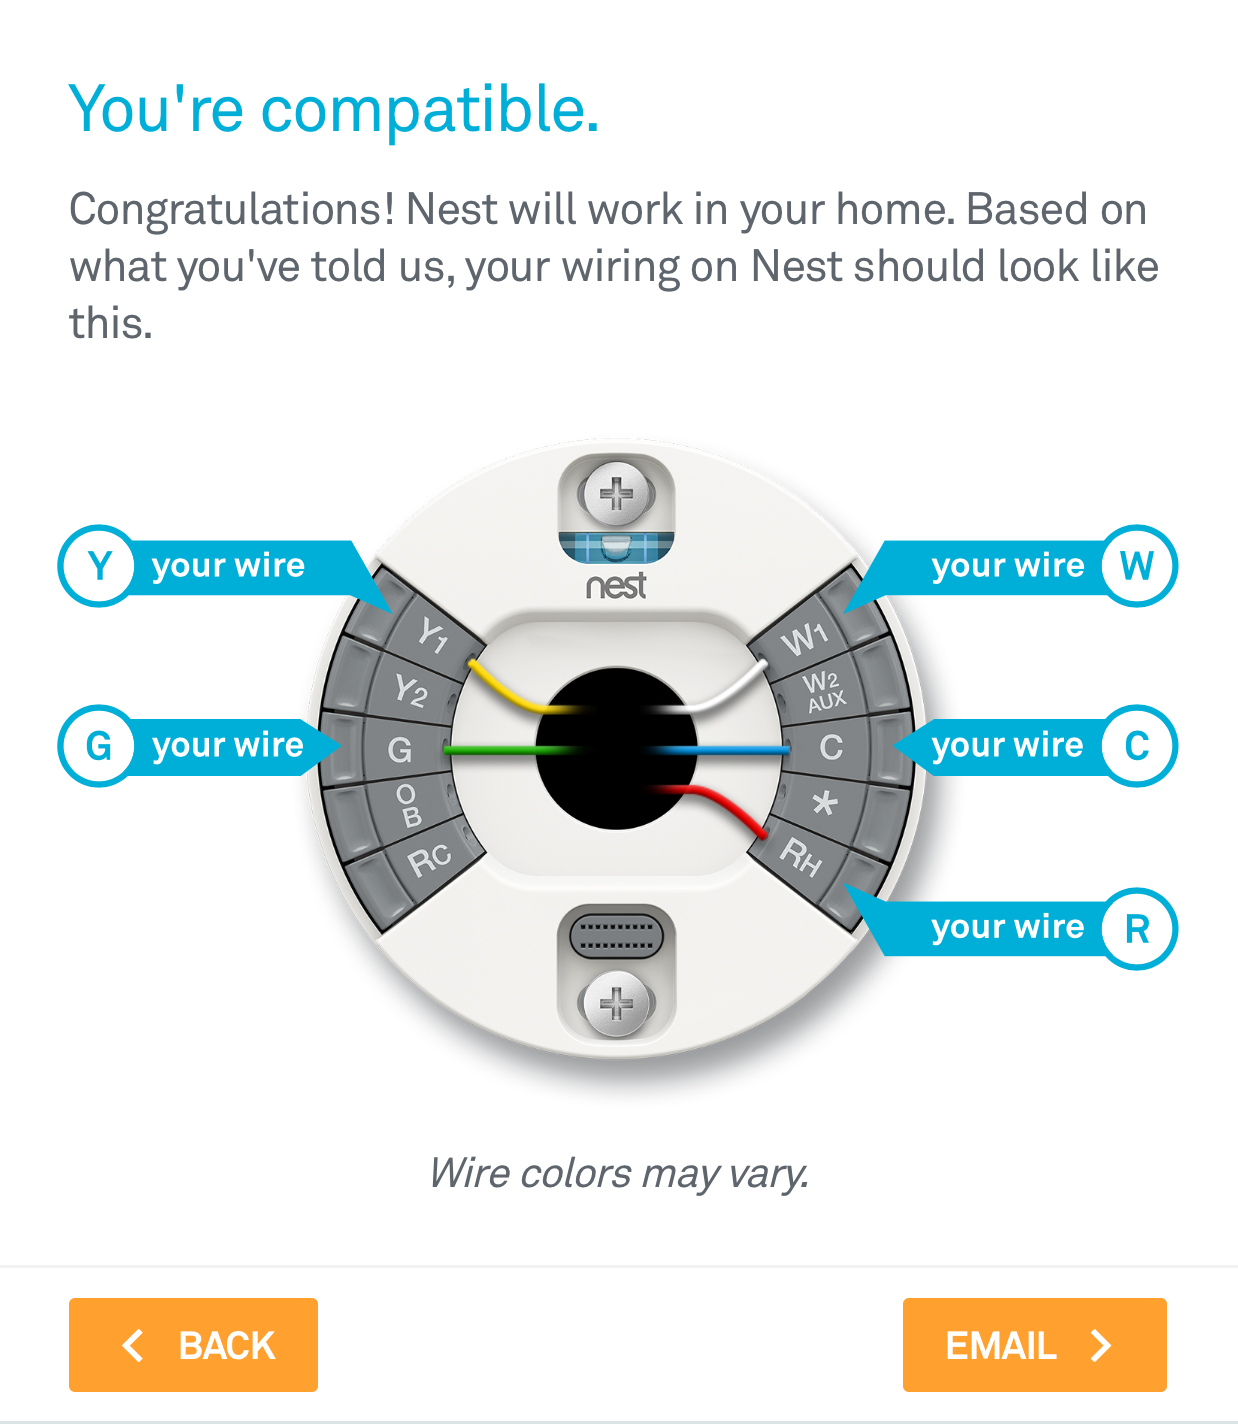 Nest Thermostat Wiring Harness | Wiring Diagram - Nest Room Stat Wiring Diagram